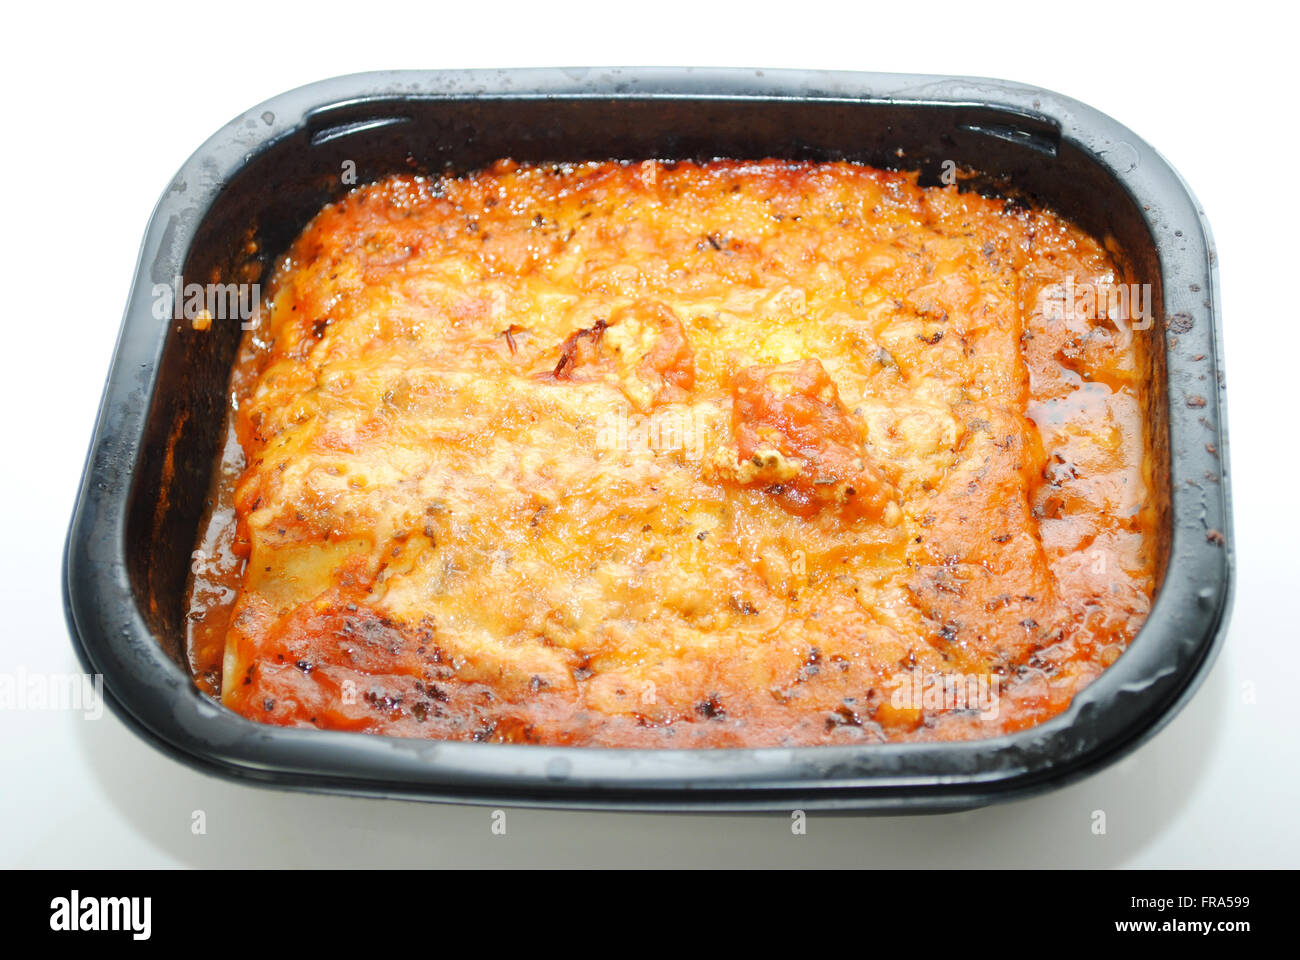 Microwaveable Pasta and Sauce TV Dinner - Stock Image